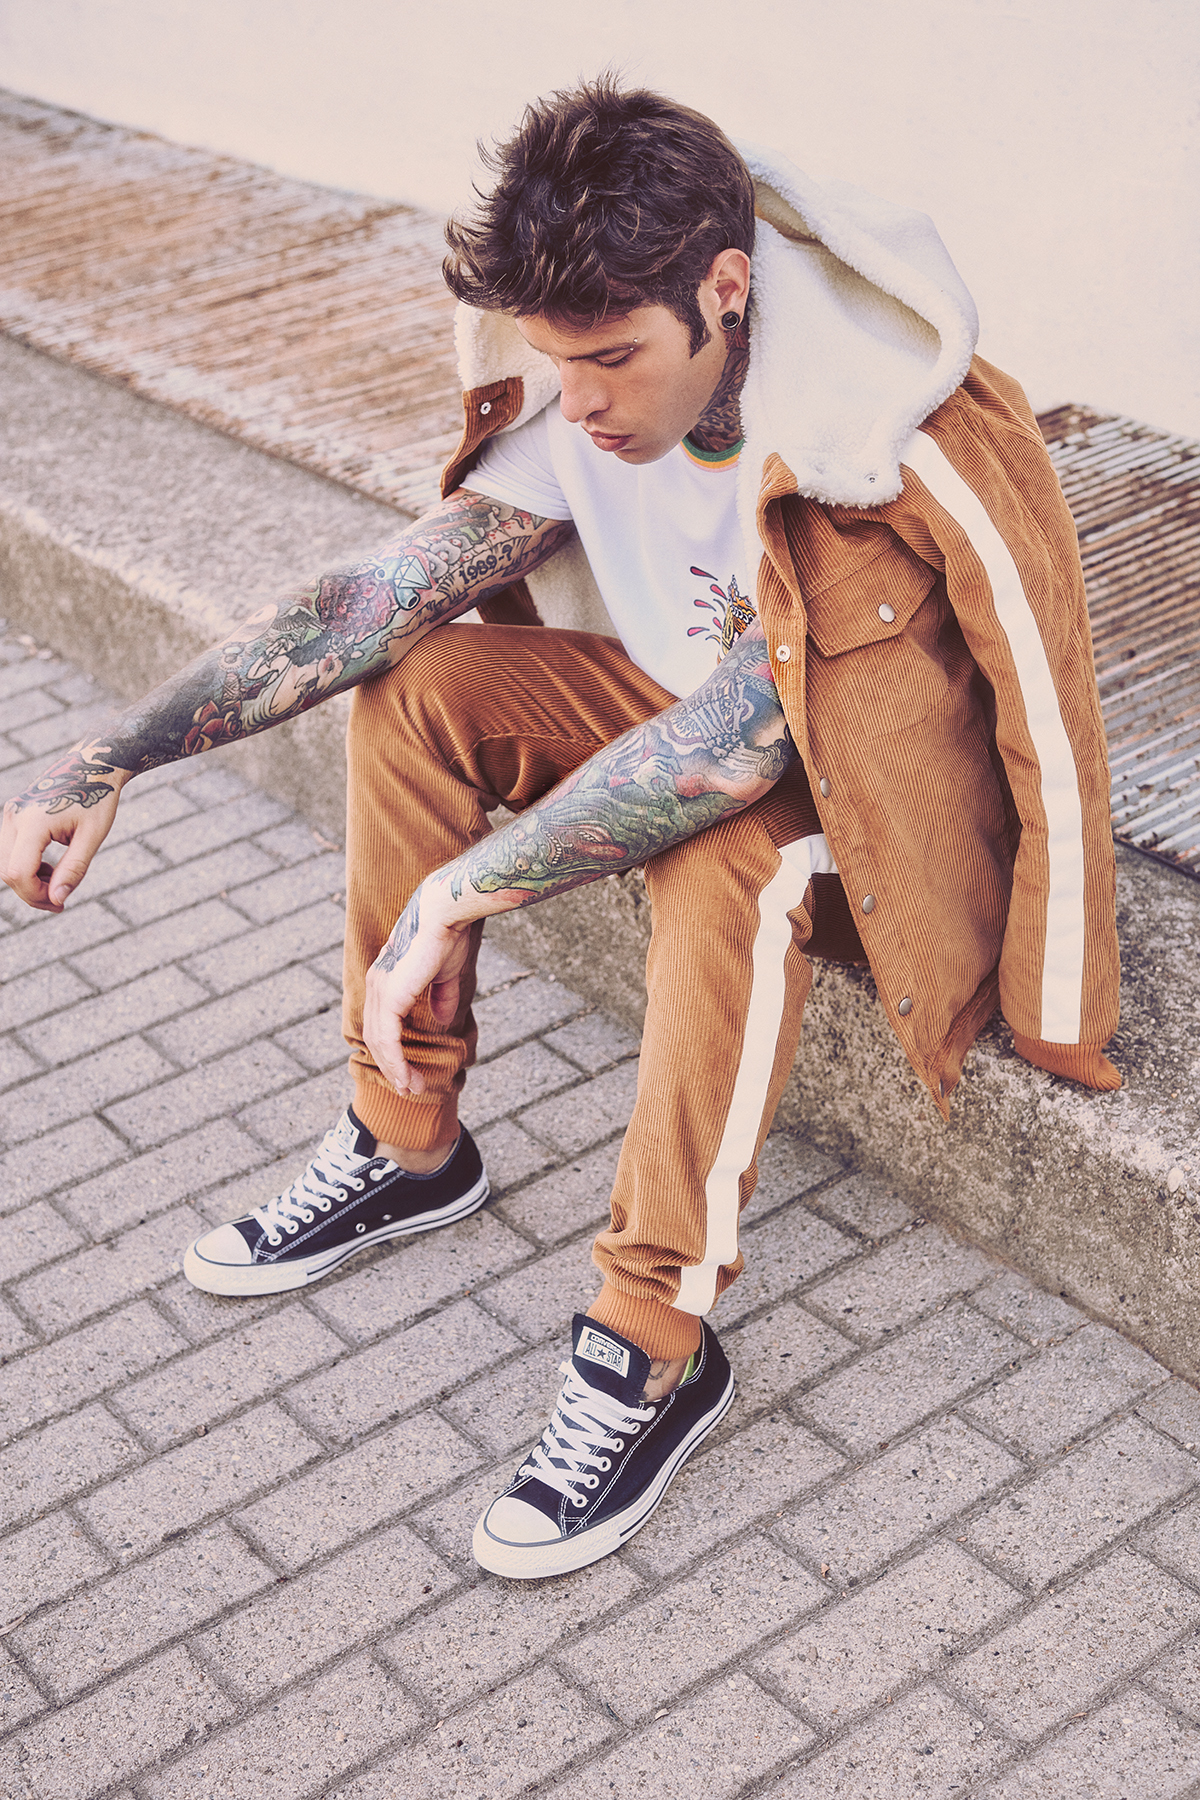 Fedez x bershka misunderstoood collection whynotmag for Collezione bershka fedez